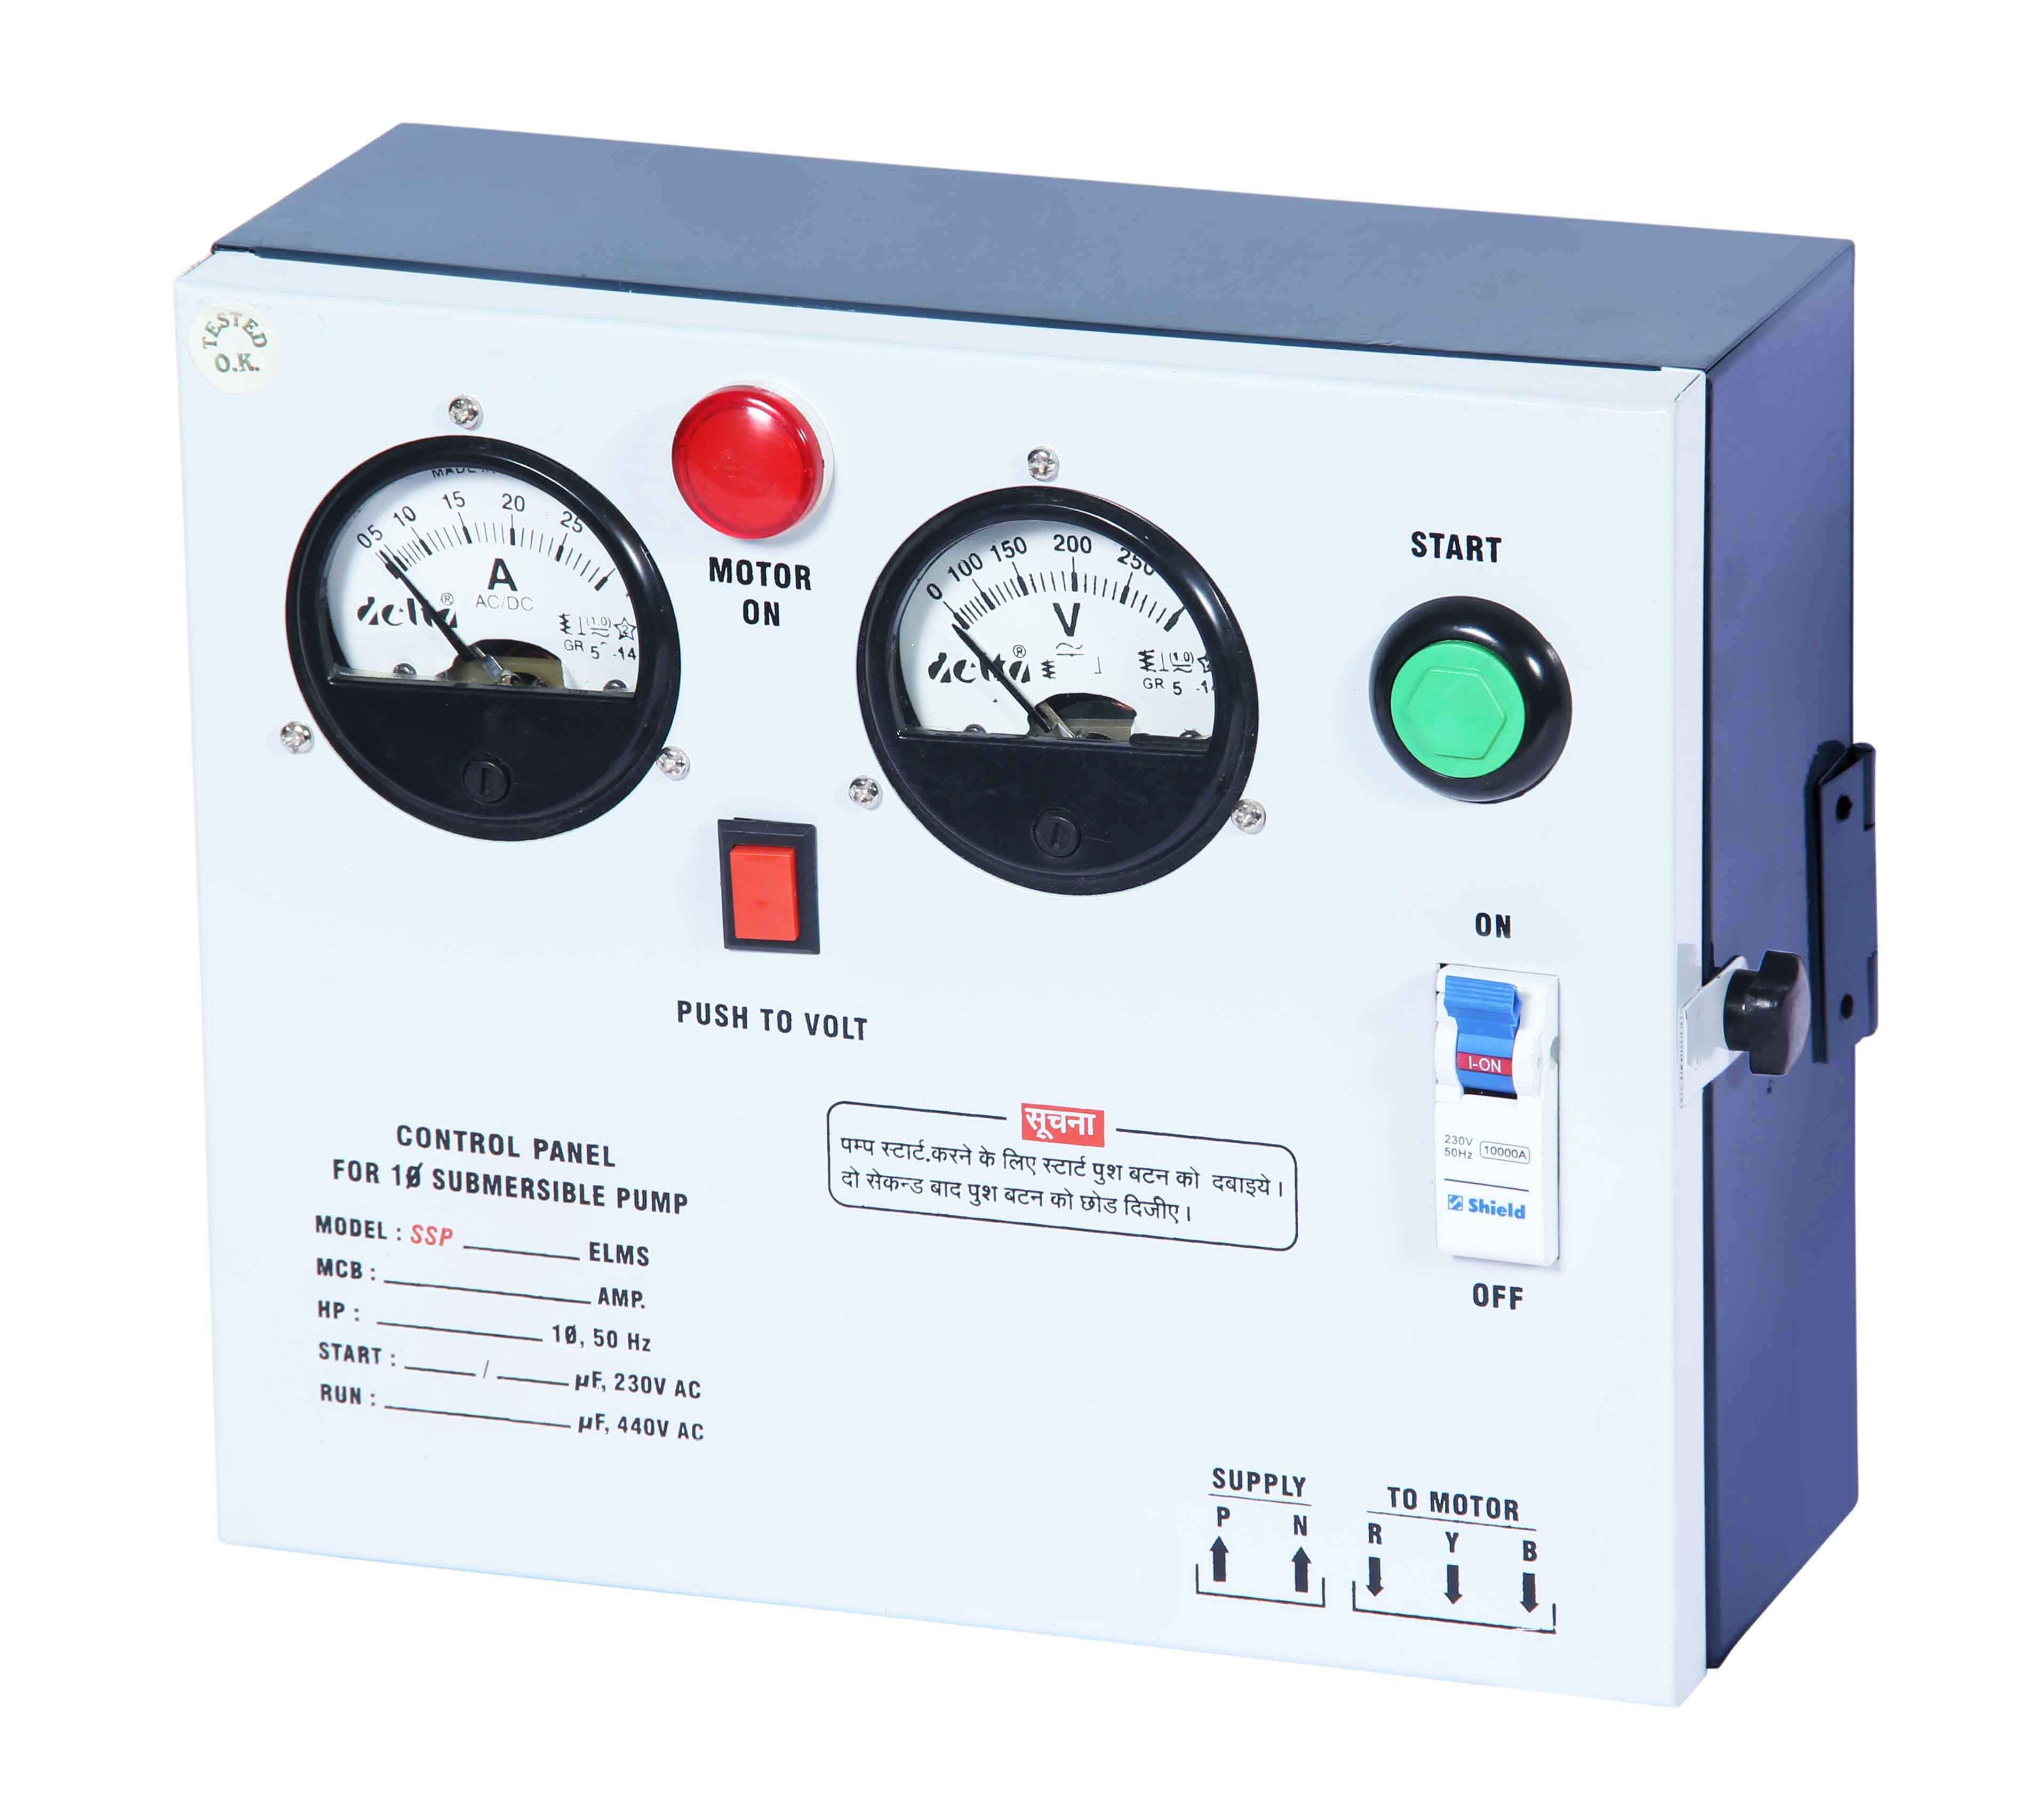 ELMS Single phase motor starter suitable for 2 HP submersible motor with overload protections by MCB